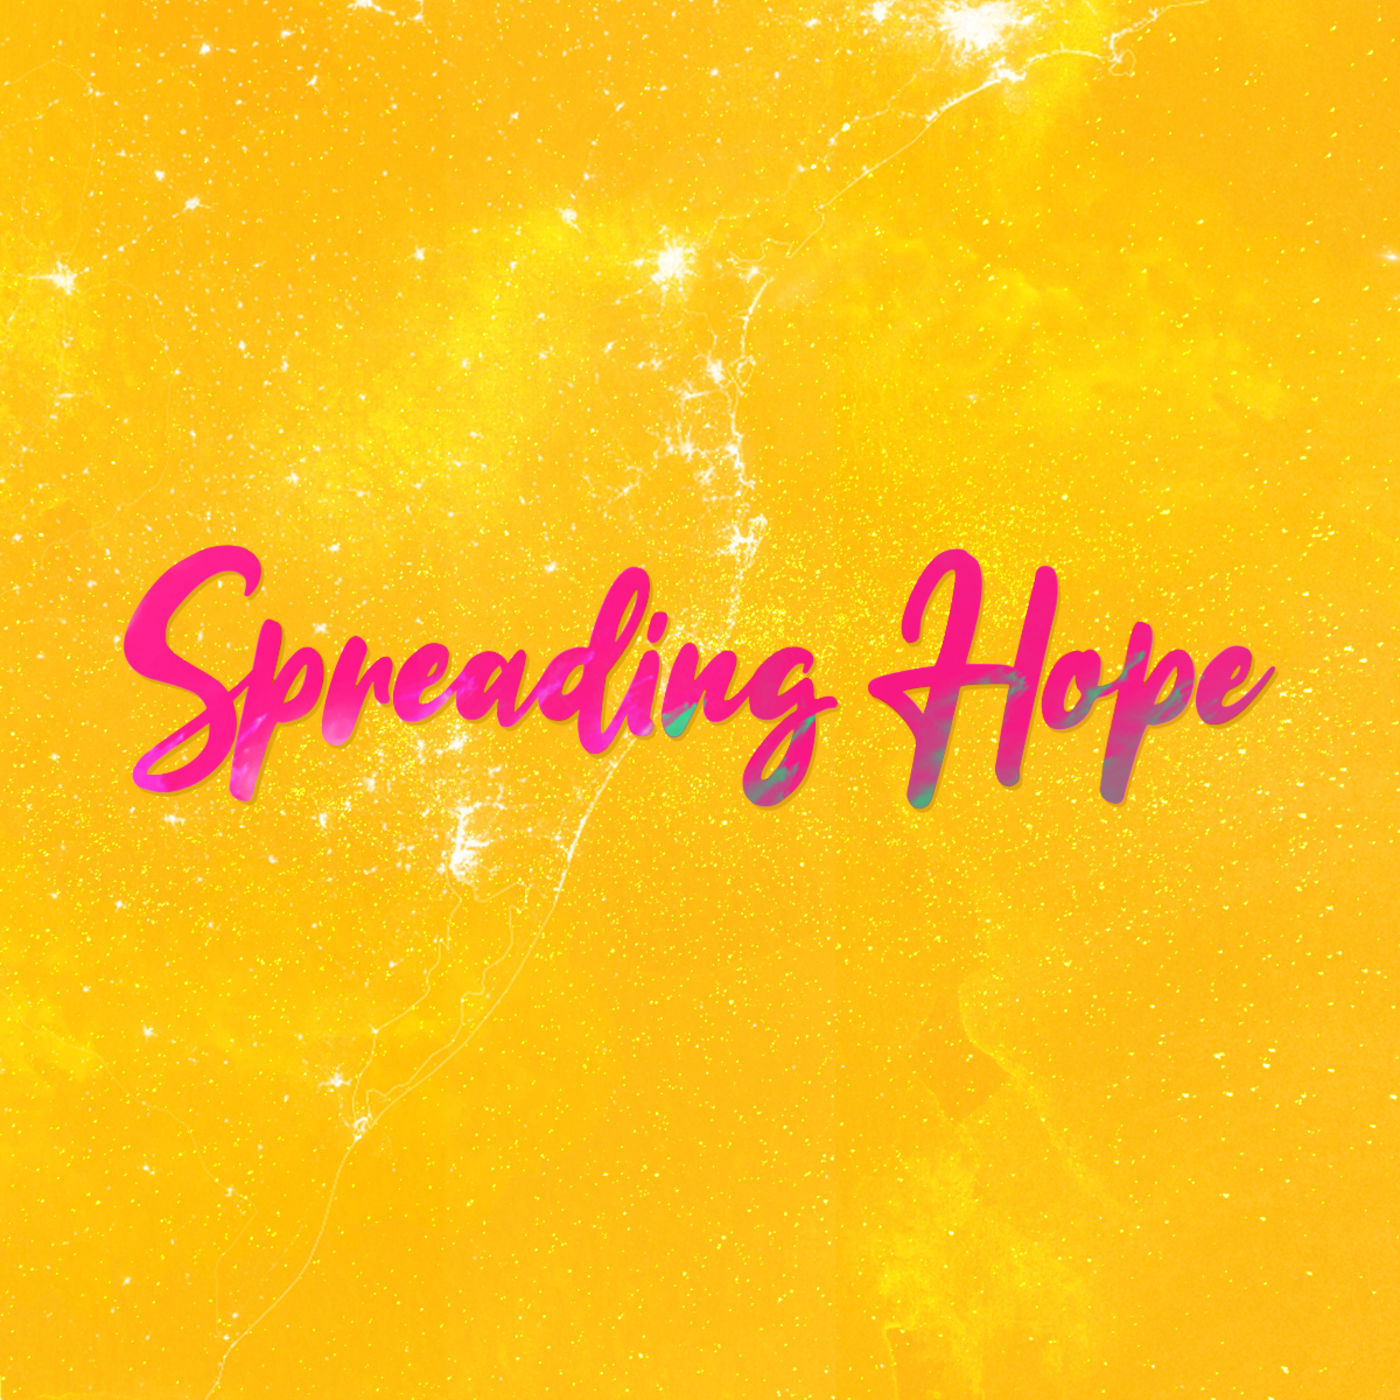 Spreading Hope #2 - Short-Term Mission